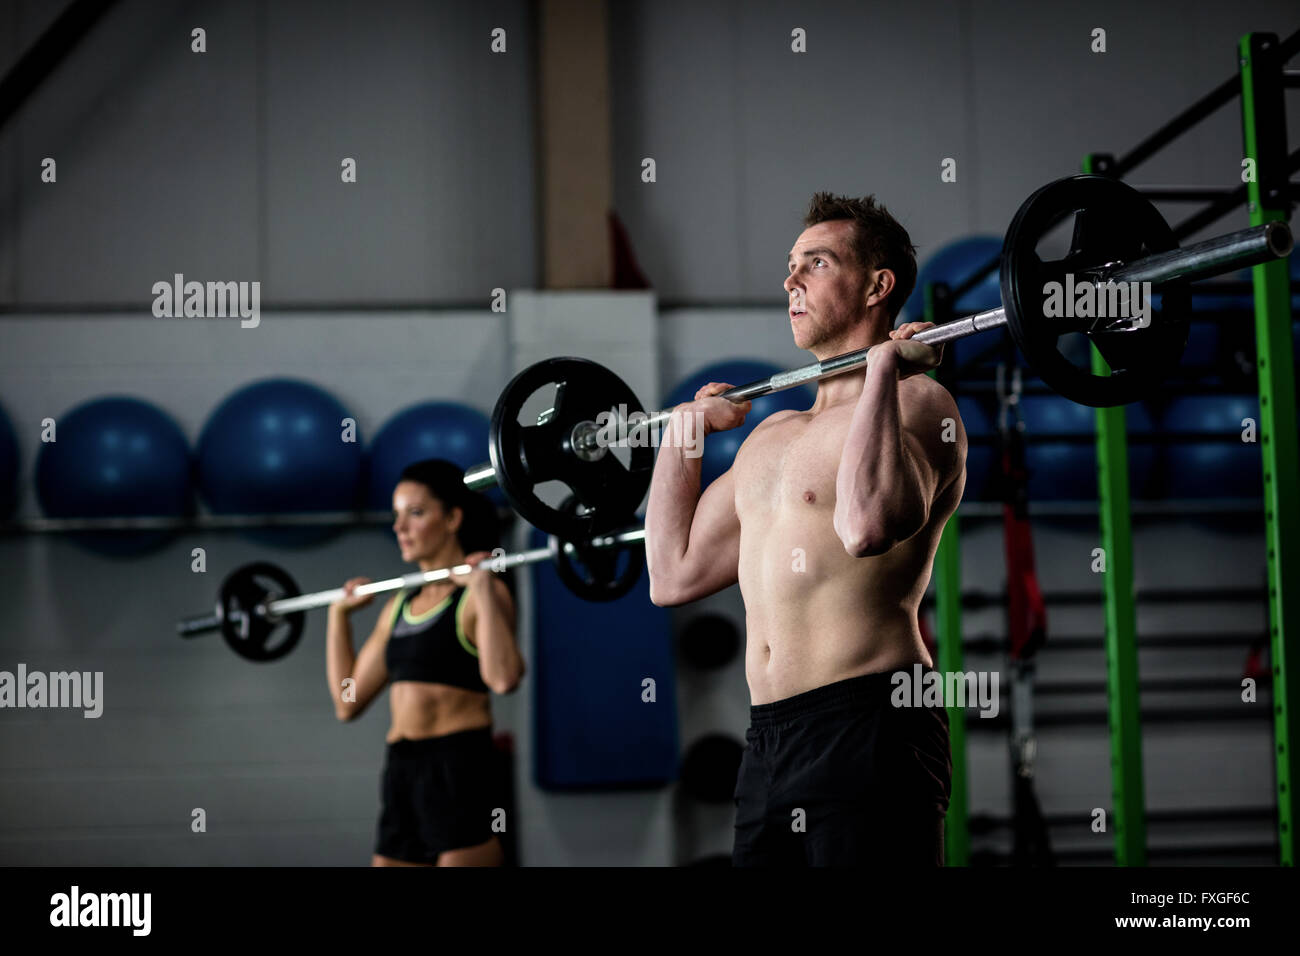 Man and woman lifting barbell - Stock Image